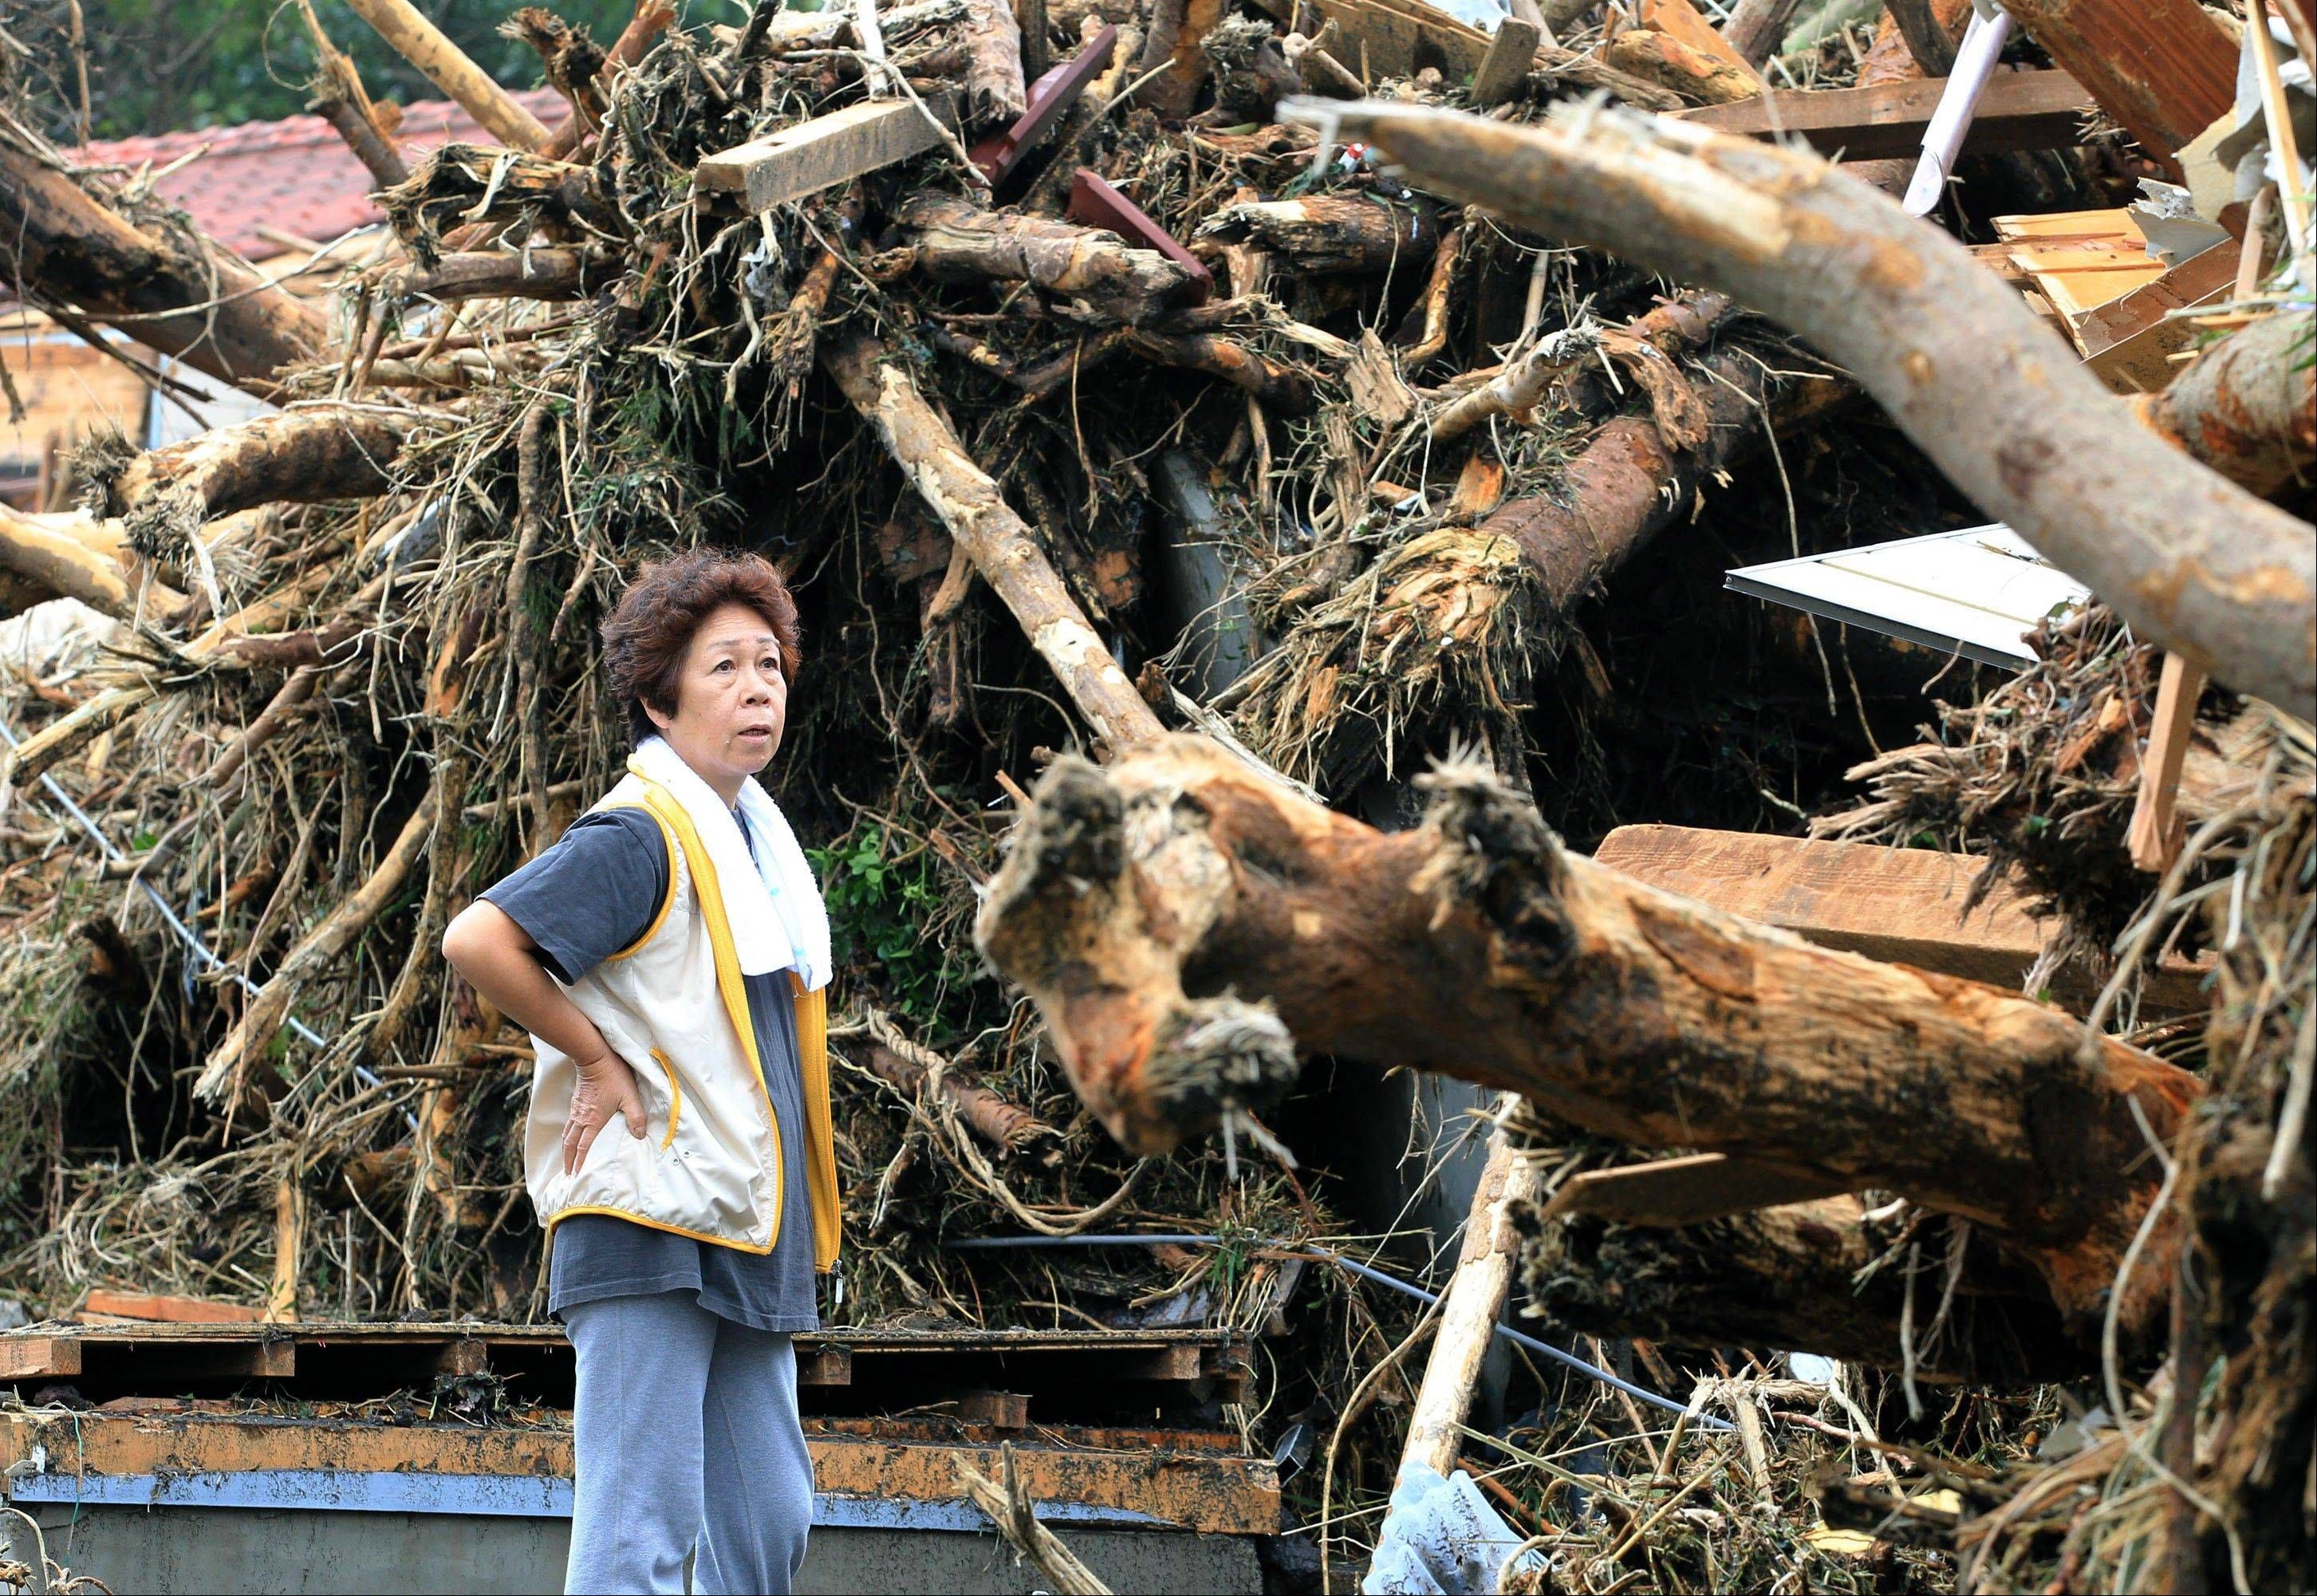 A woman looks at the aftermath of landslides in the rubble of smashed houses in Oshima after a powerful typhoon hit Izu Oshima island, about 75 miles south of Tokyo Wednesday morning, Oct. 16, 2013. Typhoon Wipha triggered landslides and caused multiple deaths on the Japanese island, before sweeping up the country's east coast, grounding hundreds of flights and paralyzing public transportation in Tokyo during Wednesday morning's rush hour.